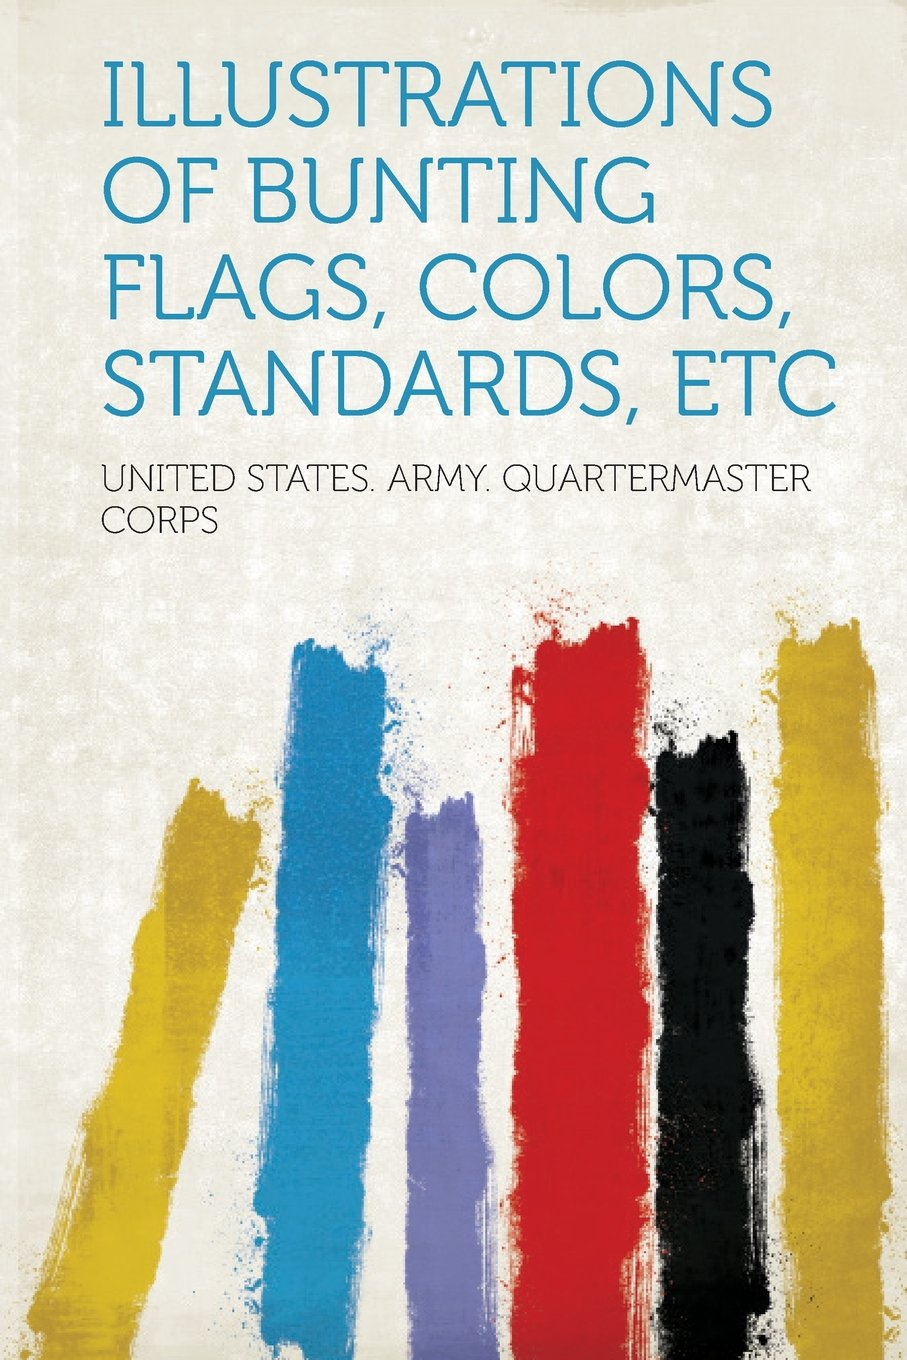 Download Illustrations of Bunting Flags, Colors, Standards, Etc pdf